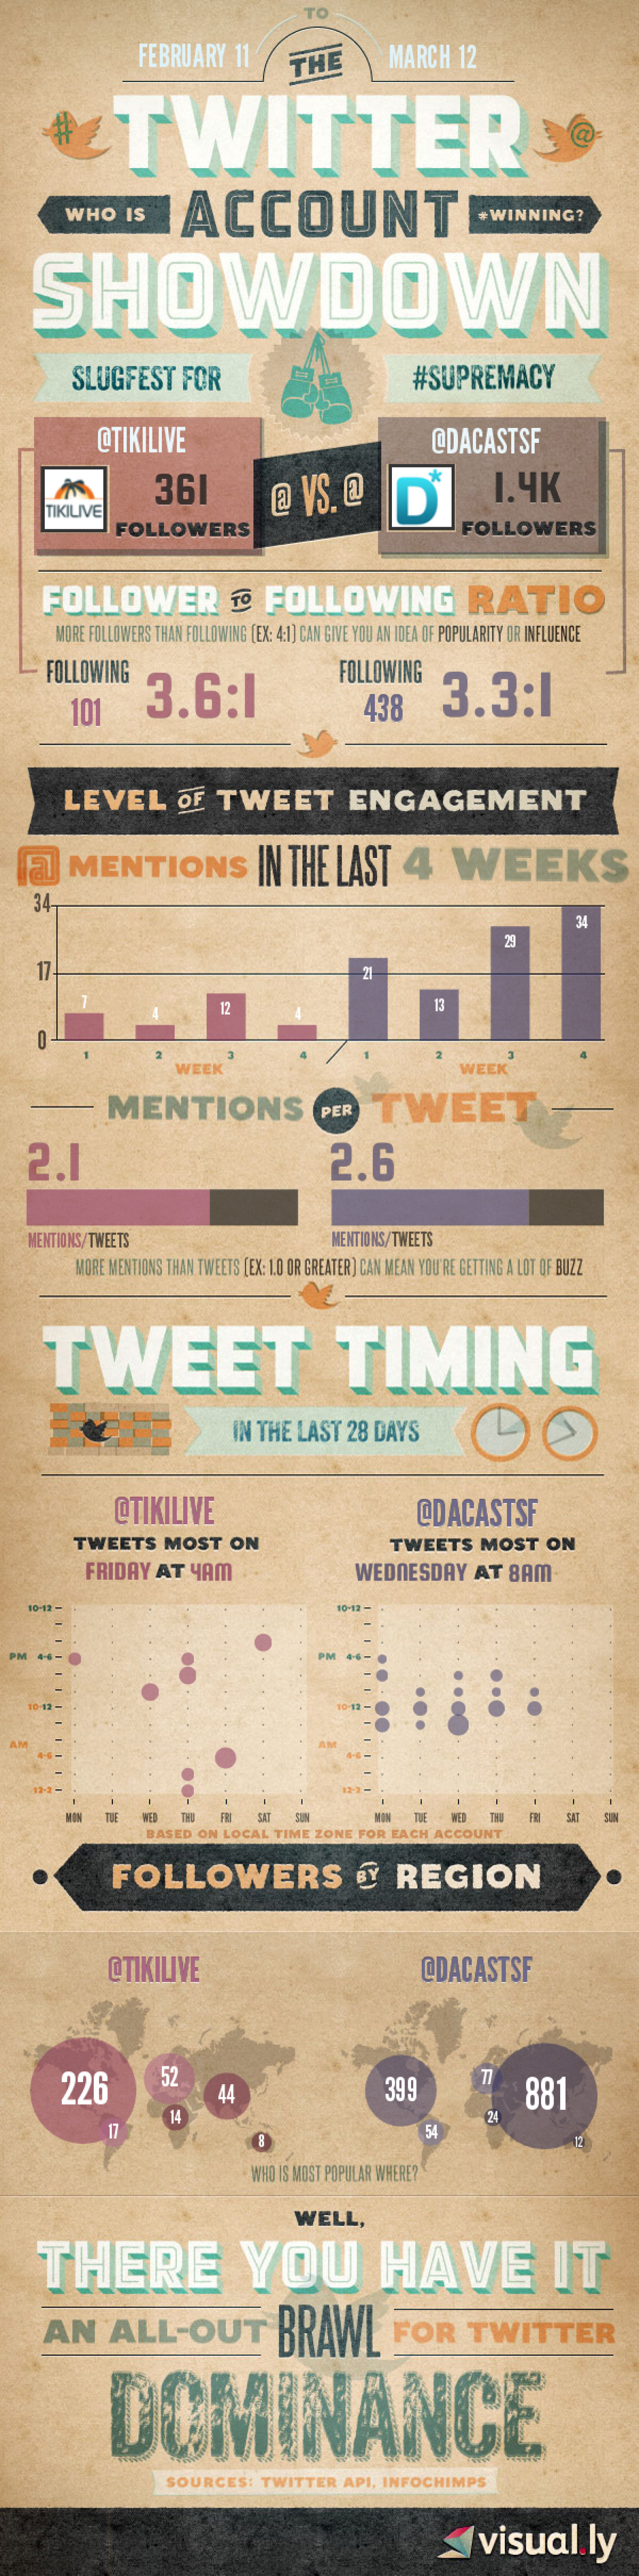 TikiLive VS DaCast - Twitter Account Infographic